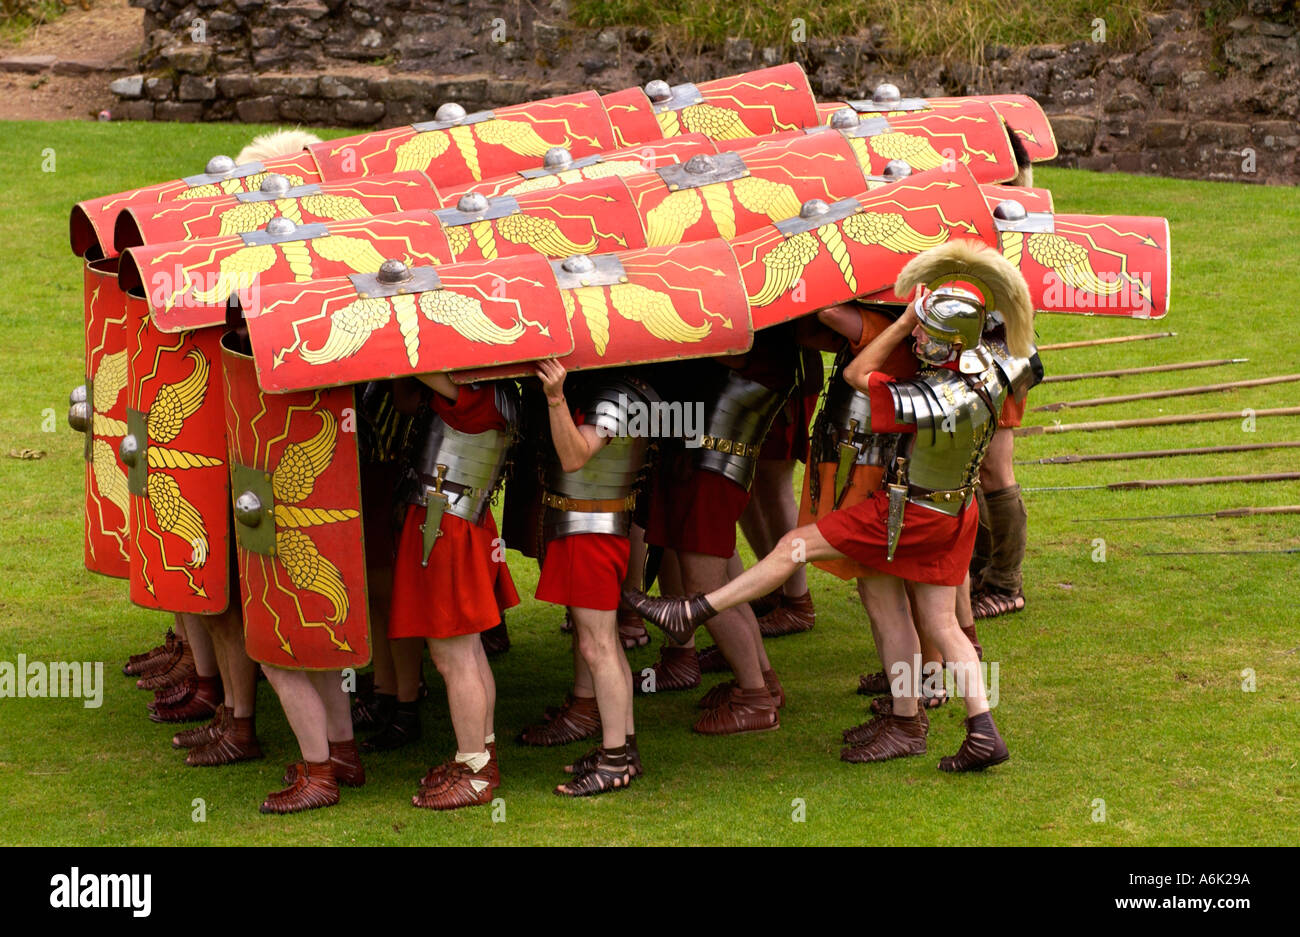 Ermine Street Guard demonstrate the tortoise defensive manoeuvre in display of fighting skills at Roman Amphitheatre Caerleon UK - Stock Image